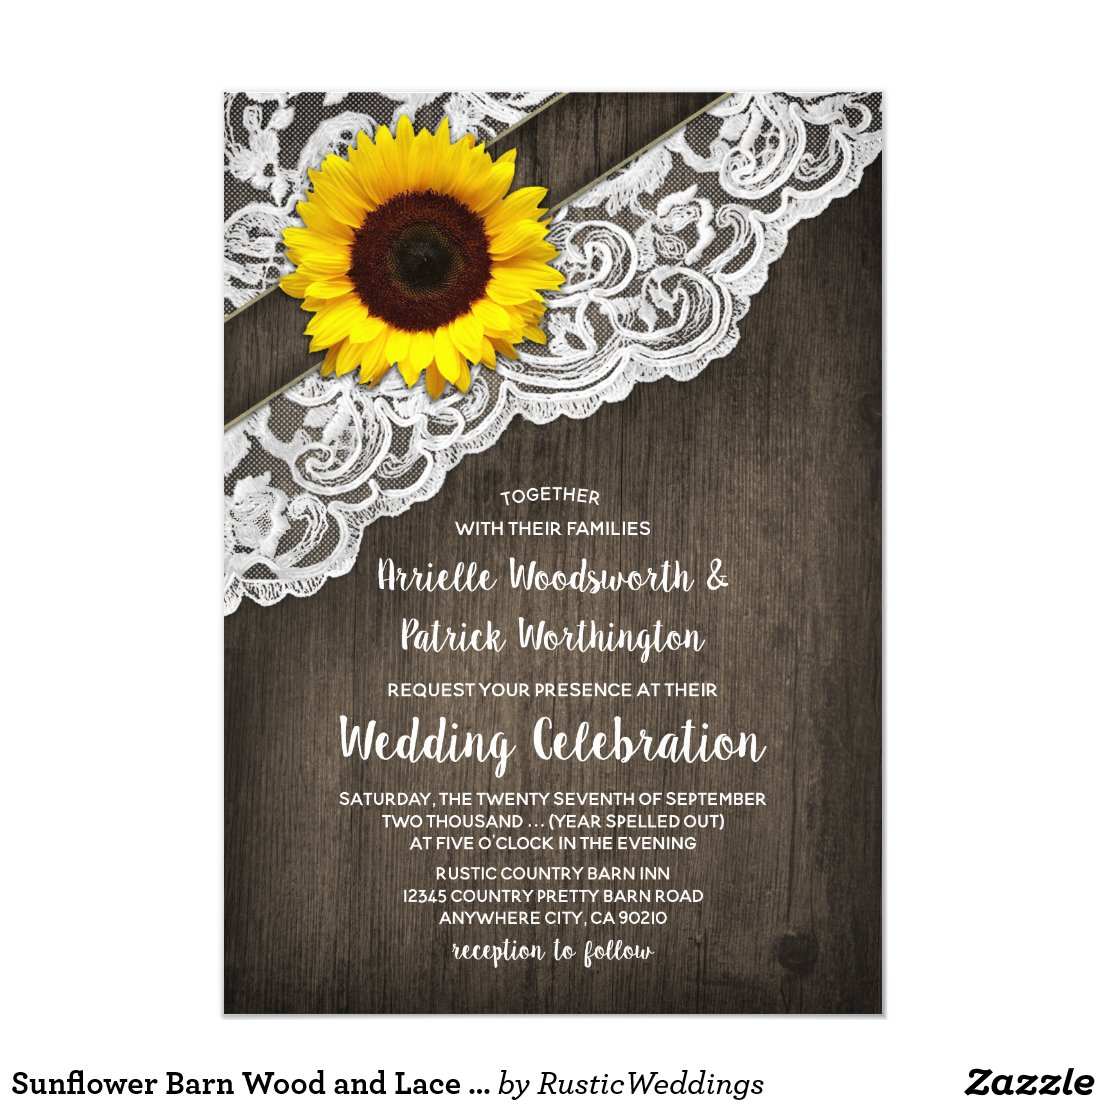 Sunflower Barn Wood and Lace Wedding Invitations